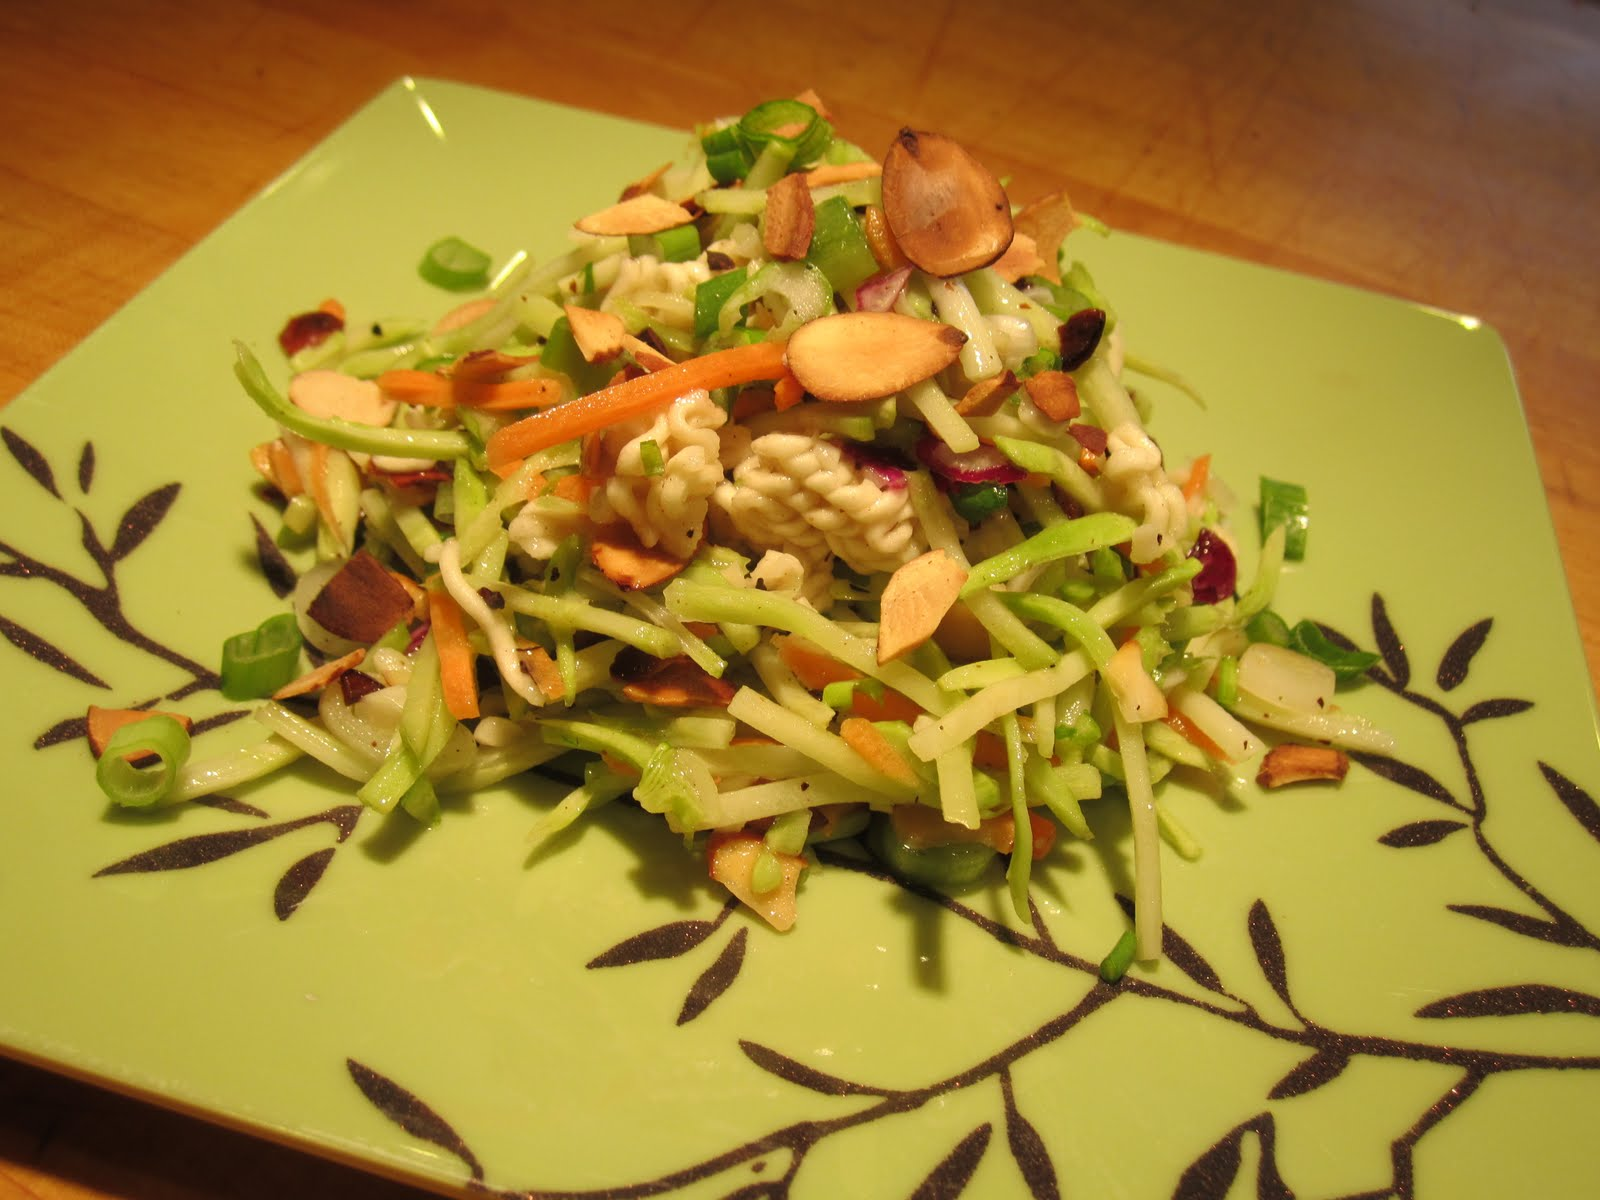 Asian Broccoli Slaw Recipe - The Lemon Bowl